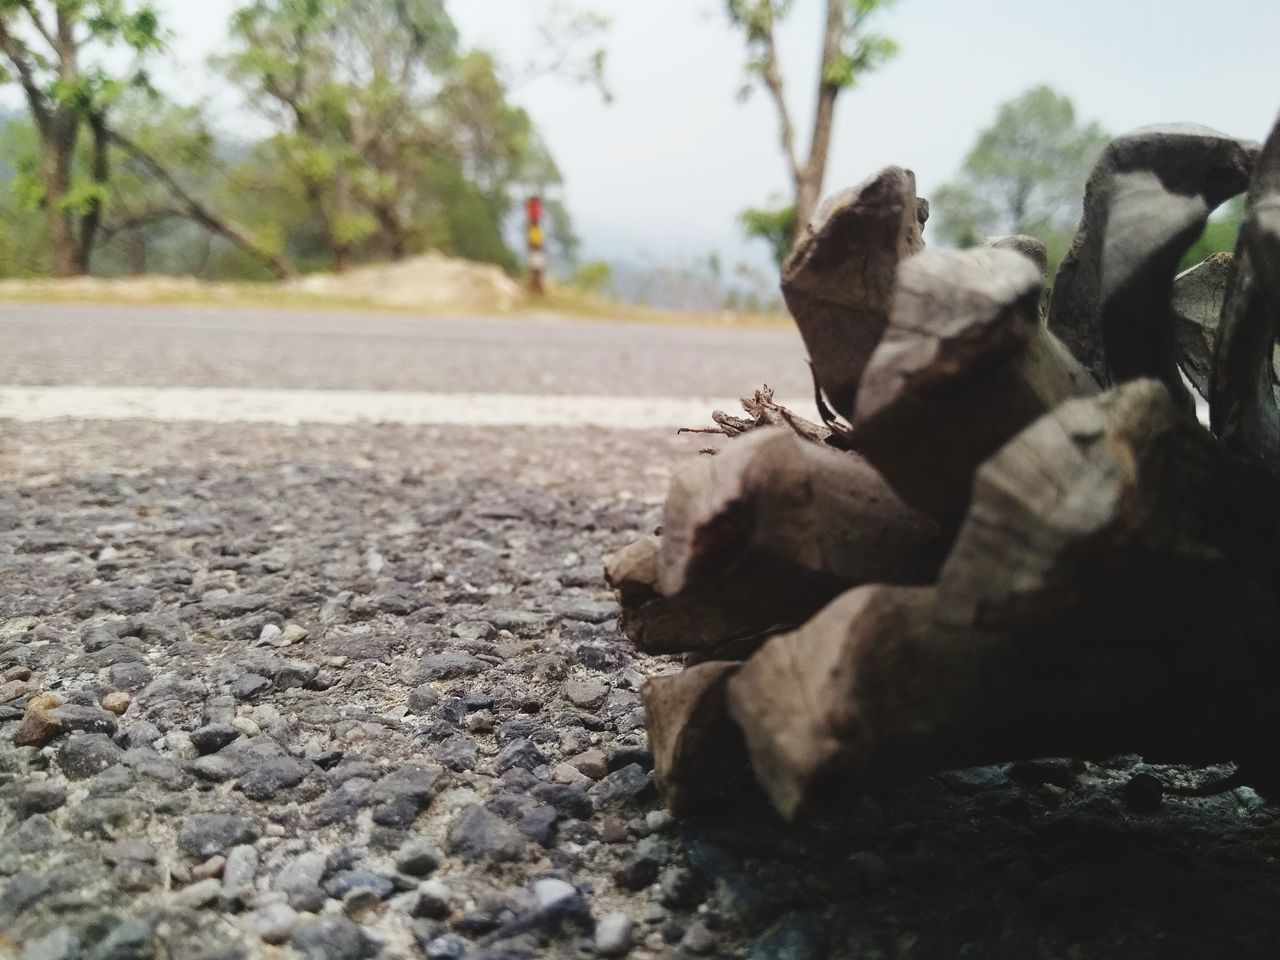 CLOSE-UP OF ROCKS ON ROAD